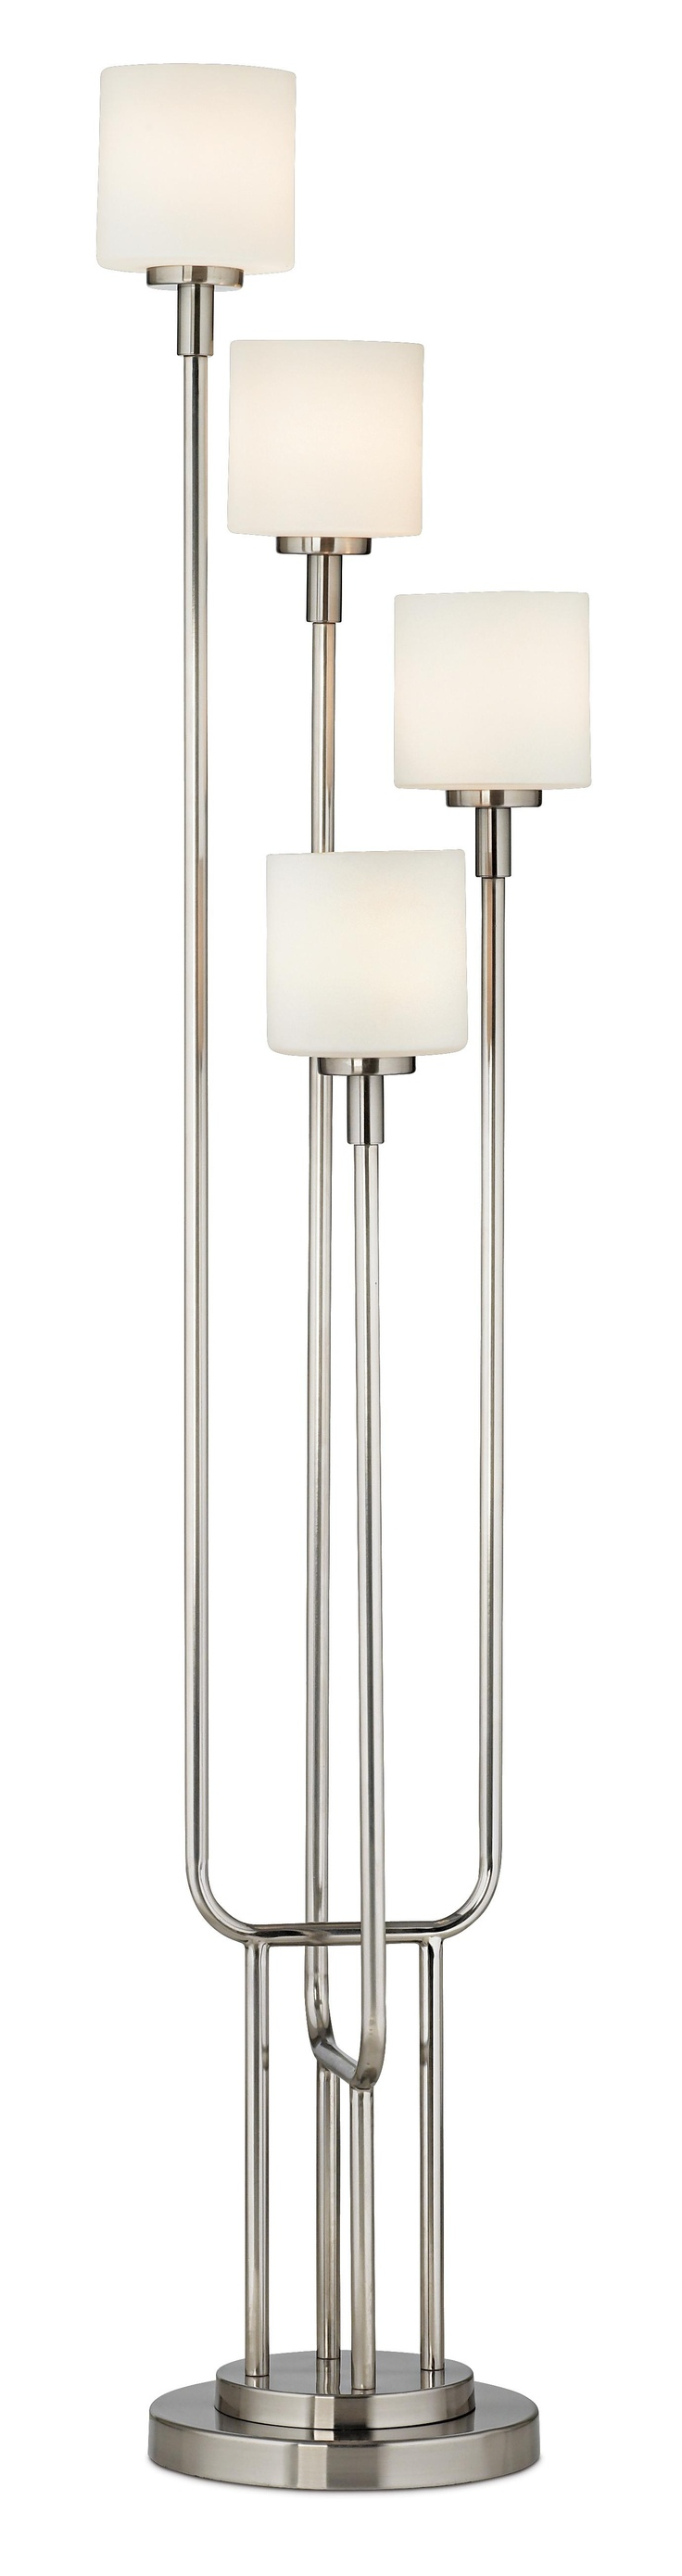 Brushed Steel And Frosted Glass Light Tree Floor Lamp   Lamps Plus